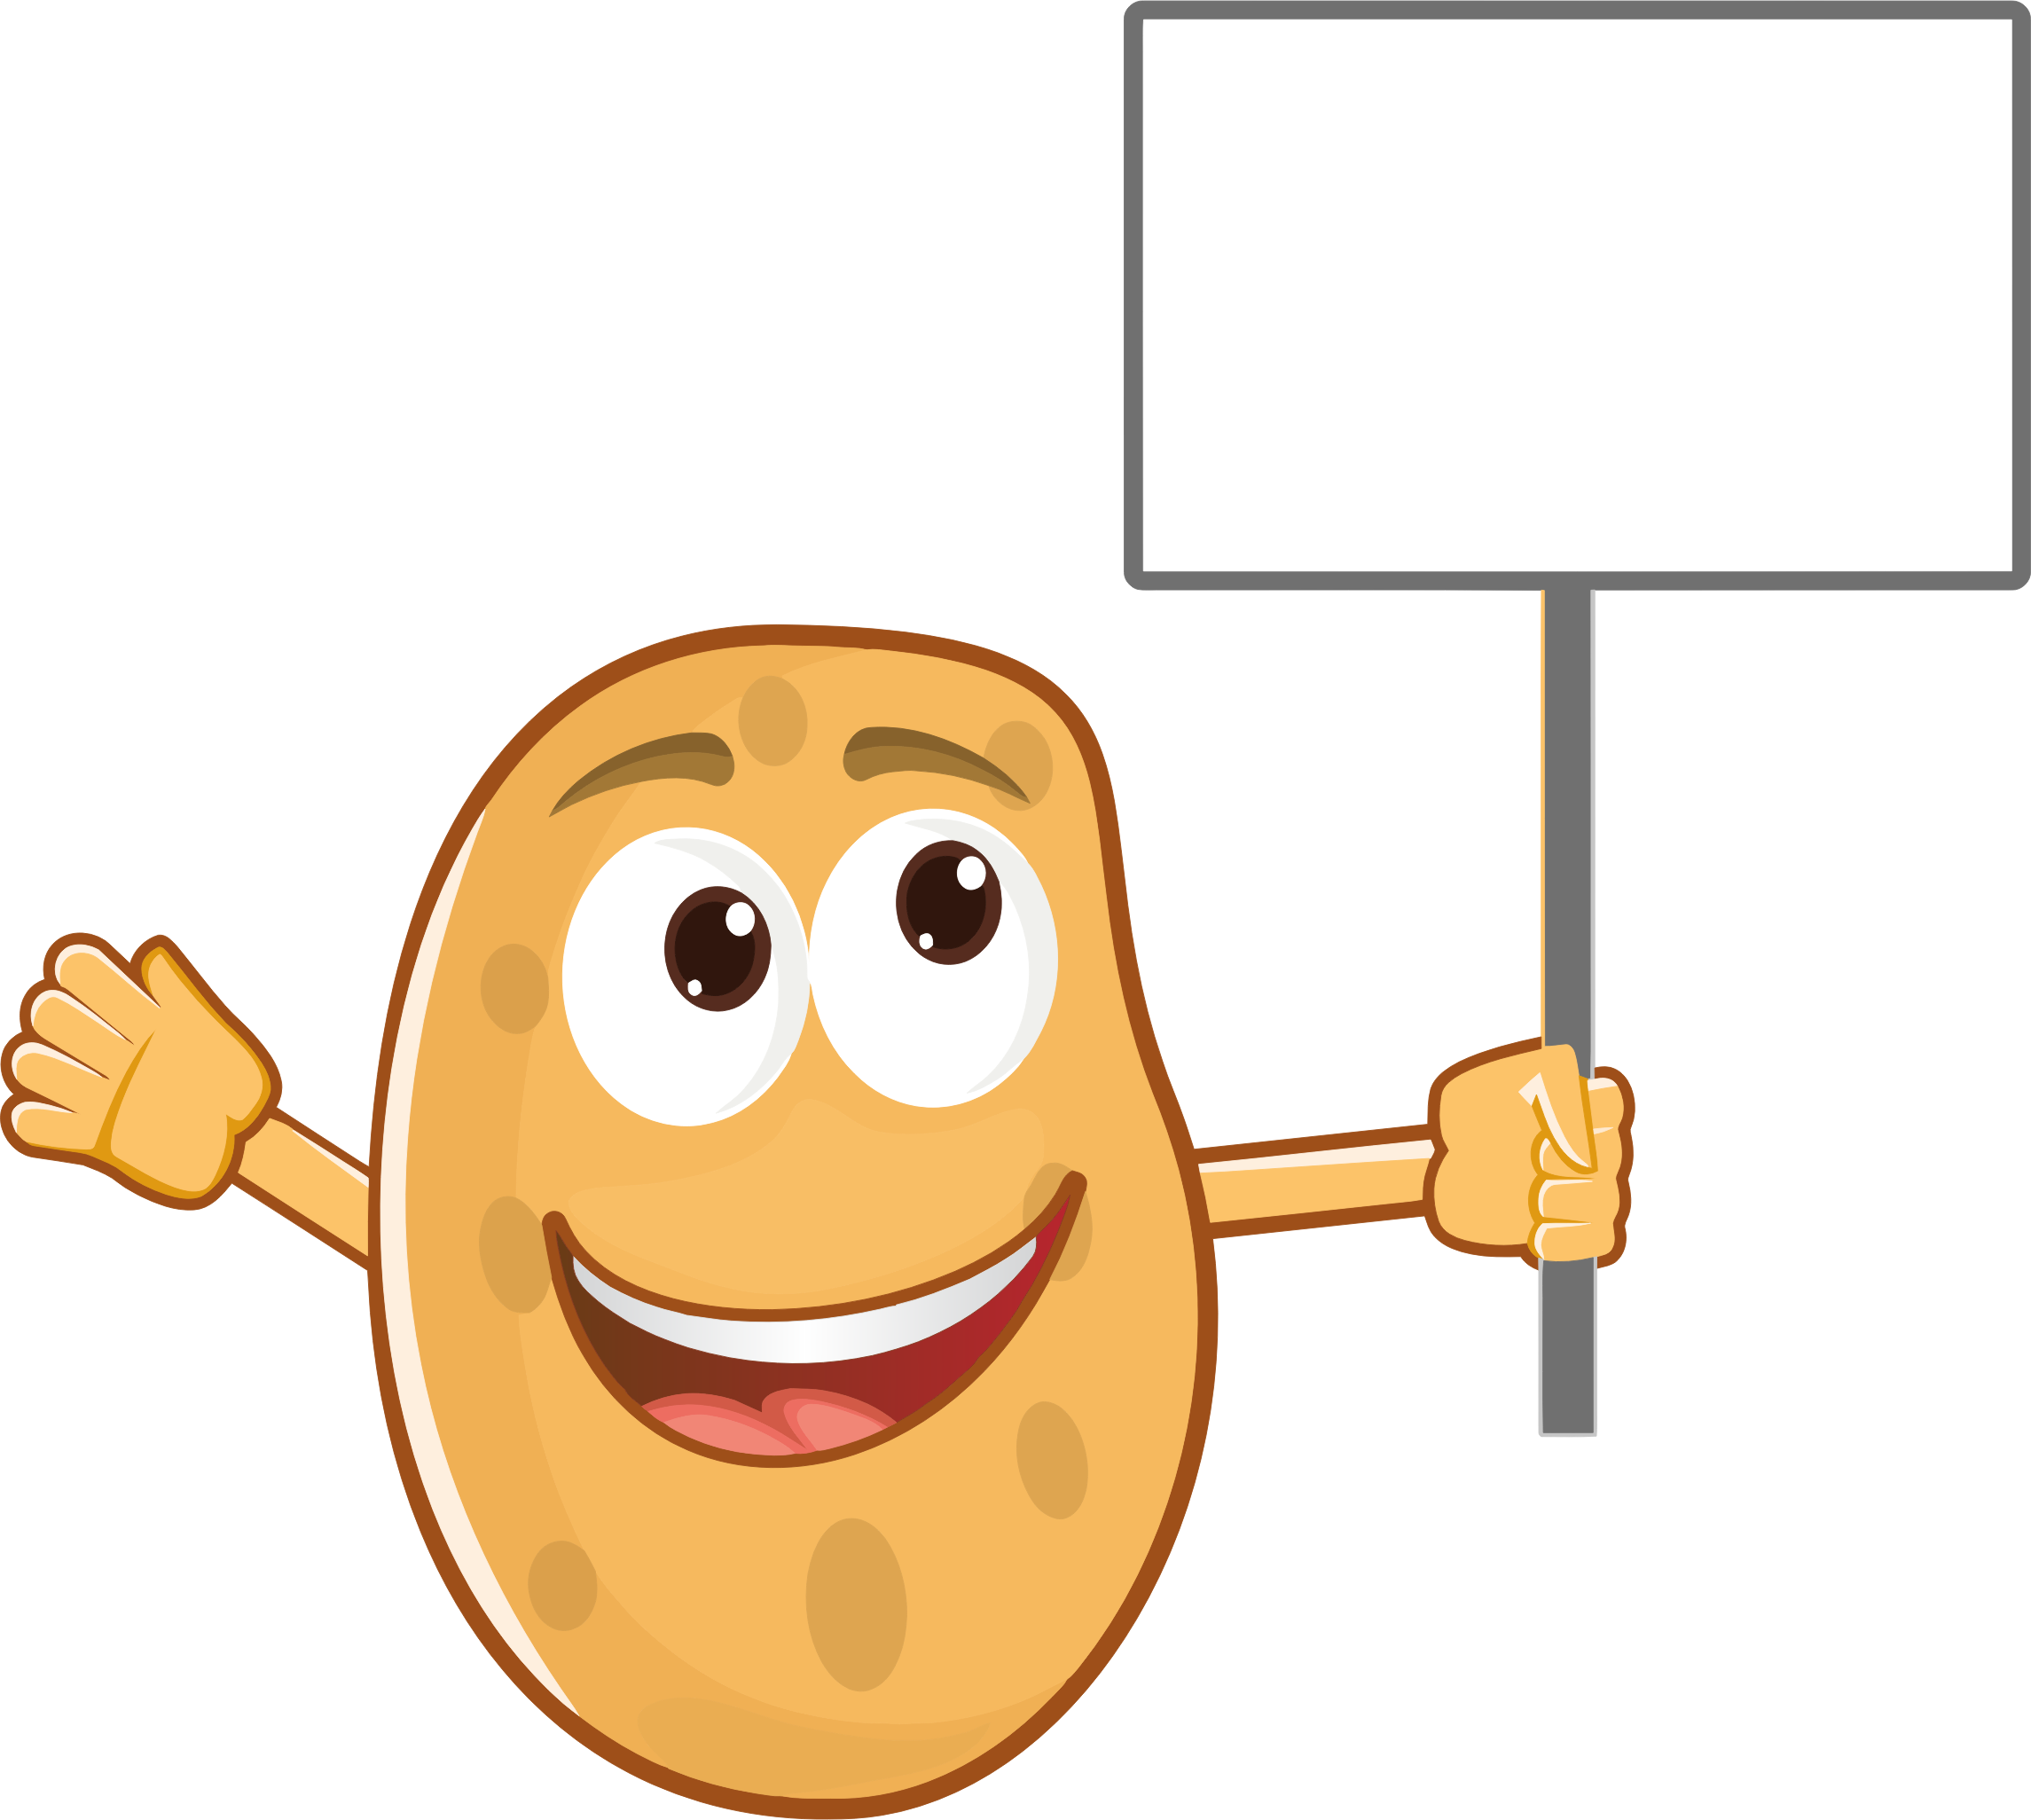 Clipart - Anthropomorphic Potato Holding Sign